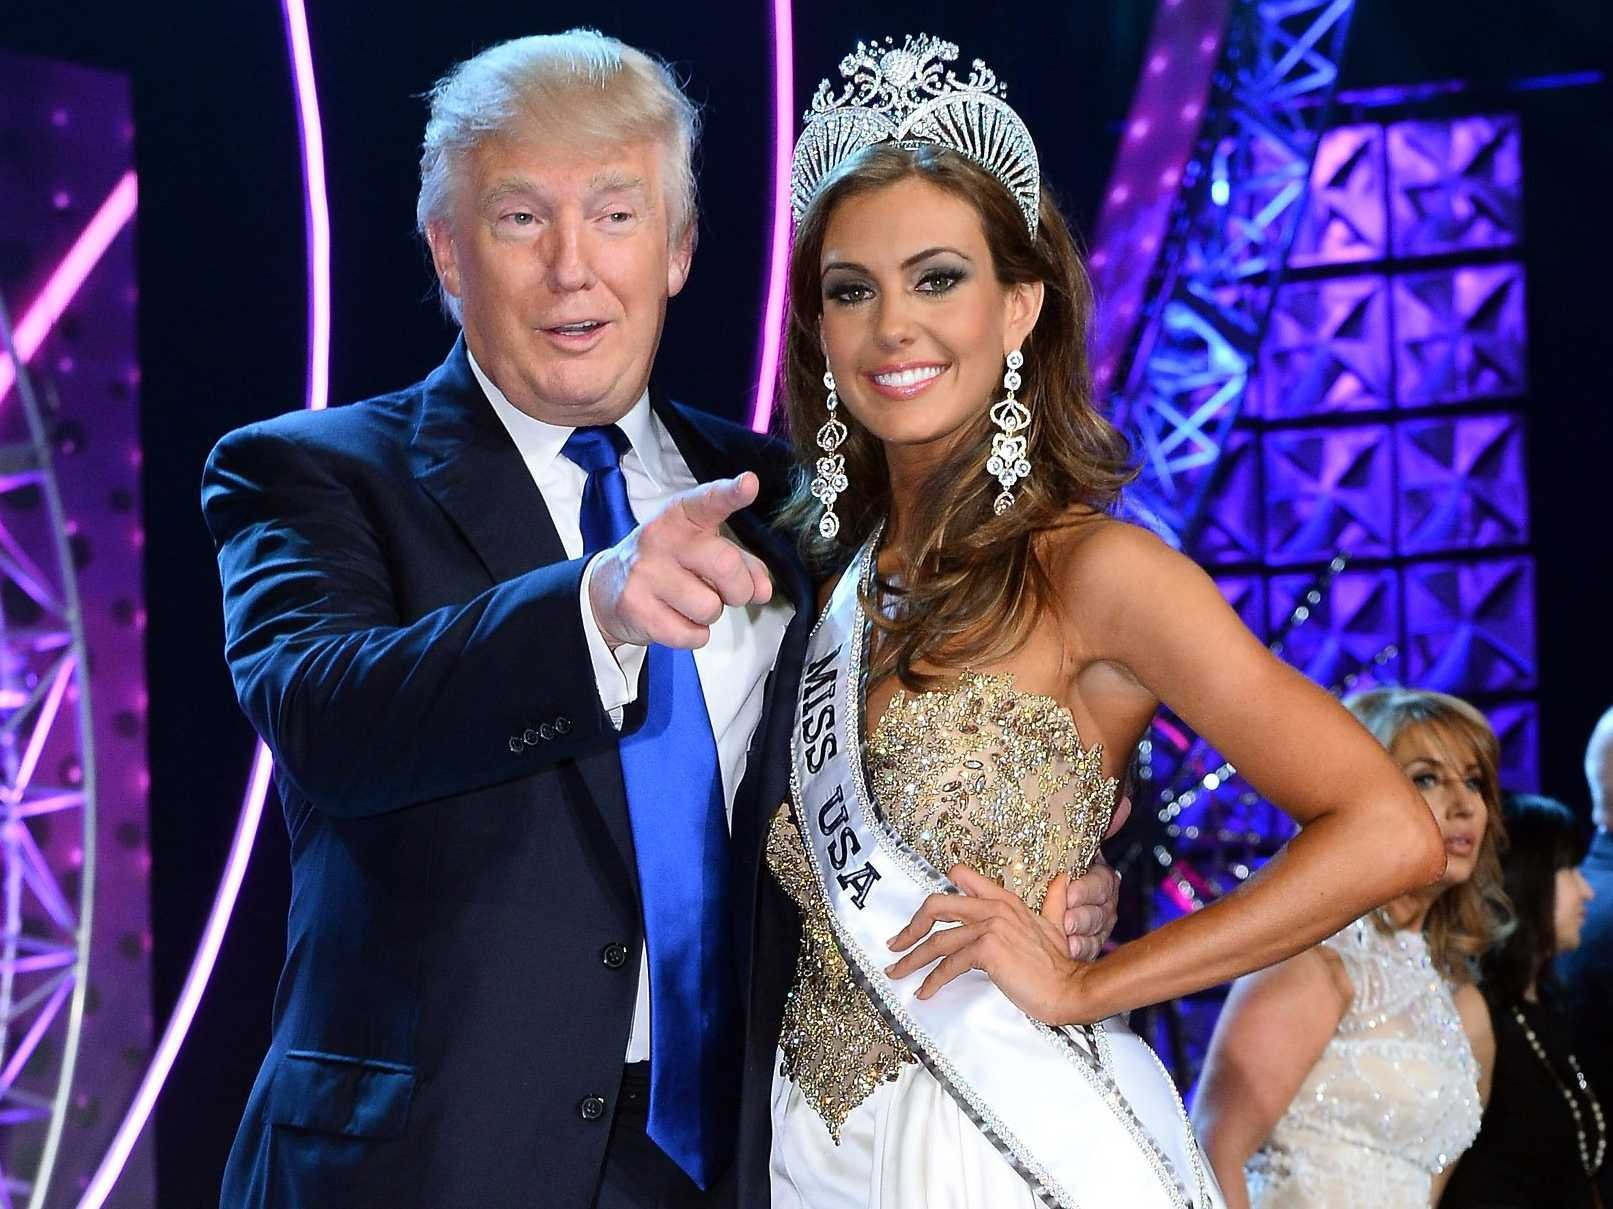 donald-trump-miss-usa